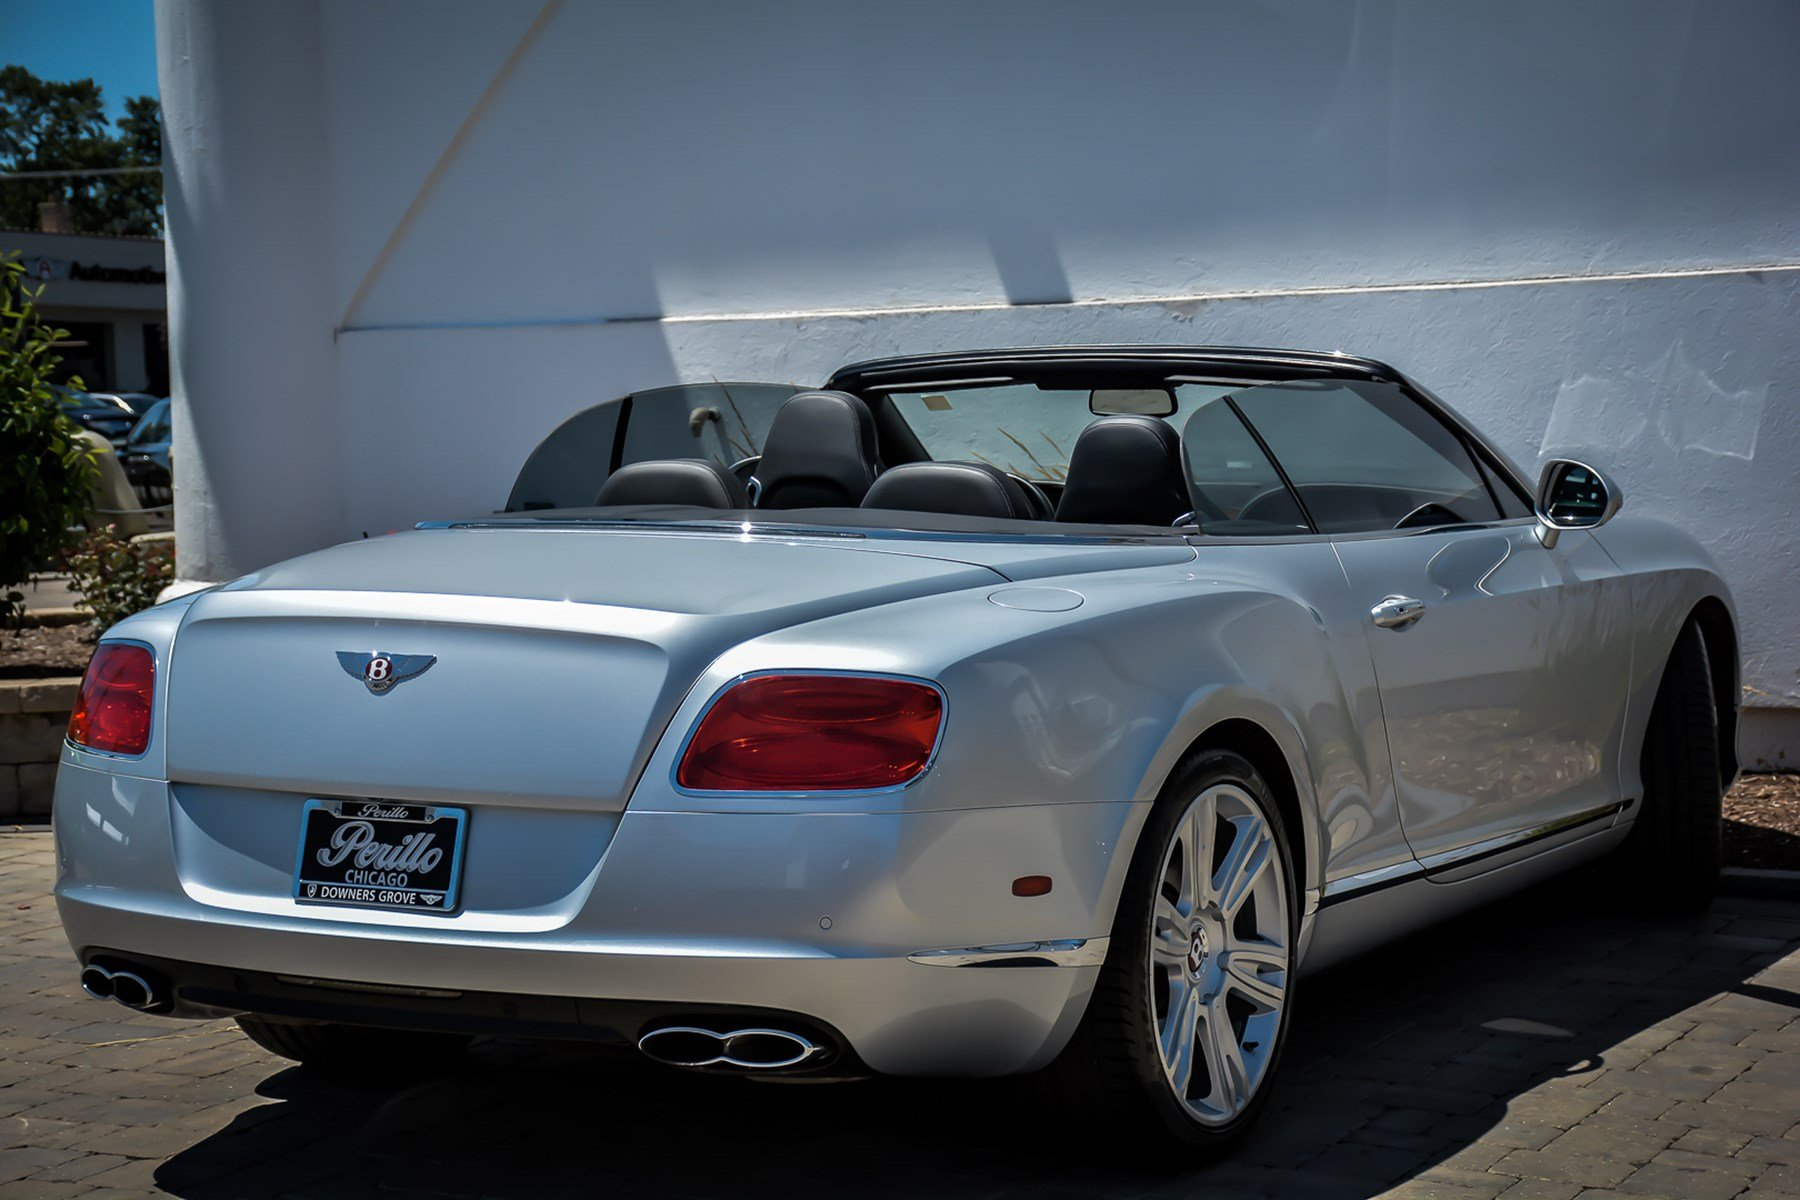 Pre-Owned 2013 Bentley Continental GTC V8 w/Sports Specification